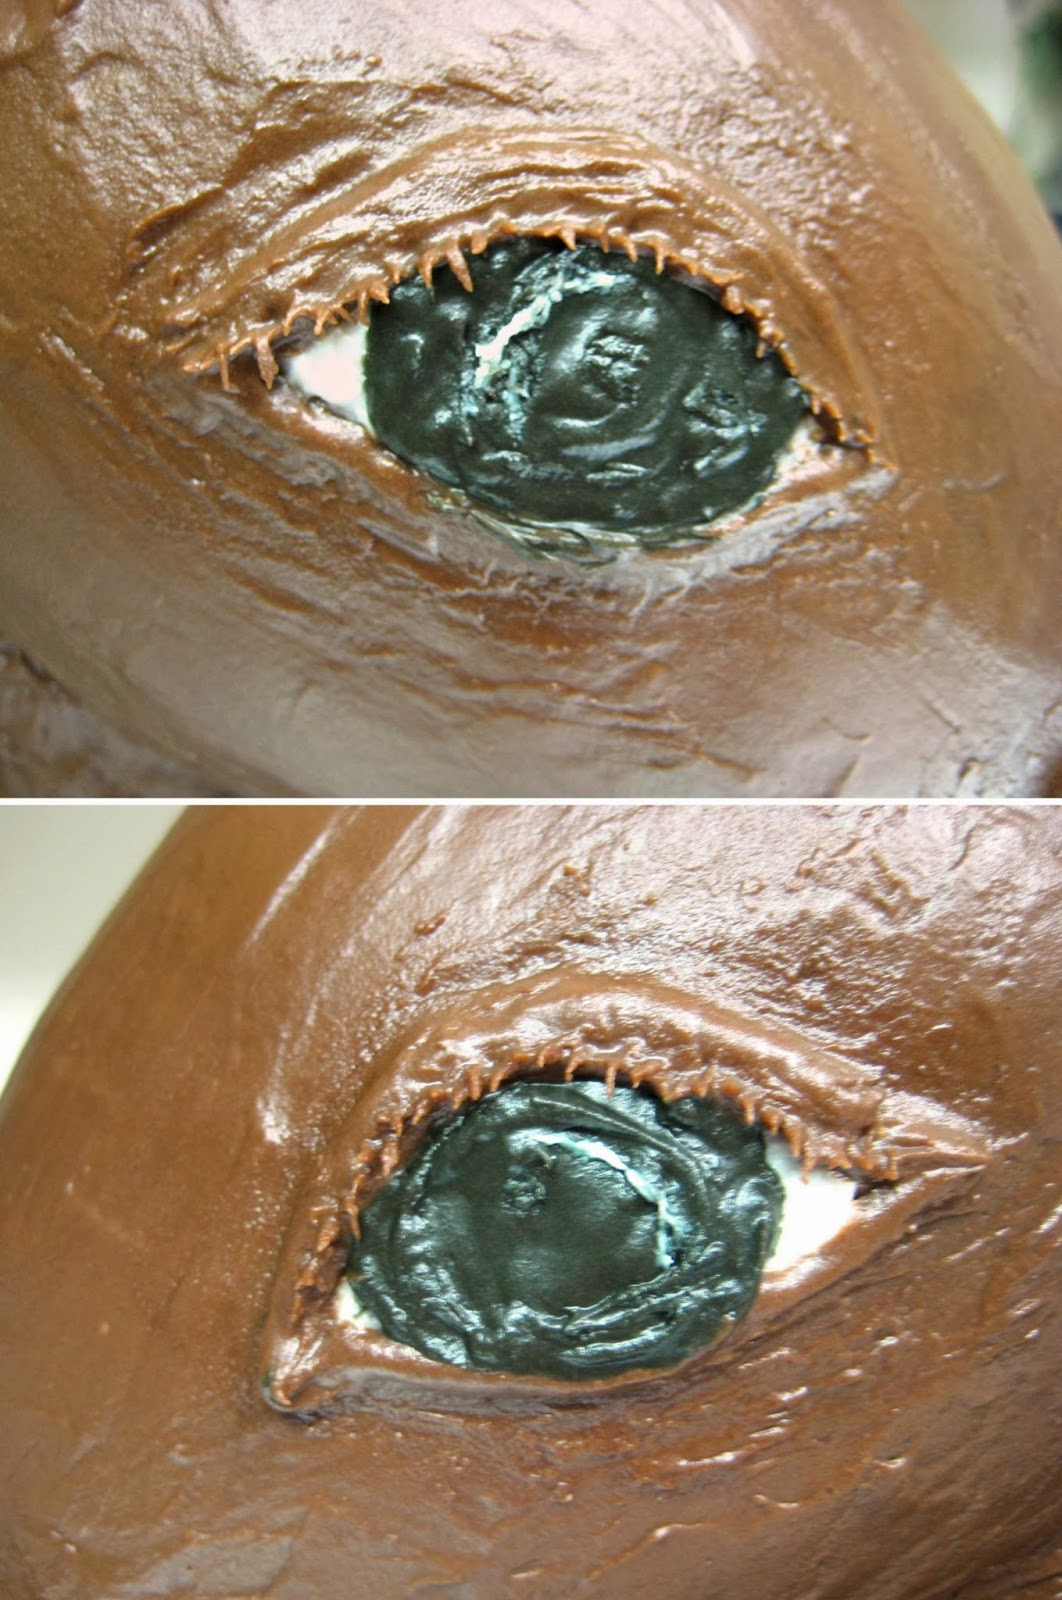 3D Horse Cake - Close-Up View of Eyes